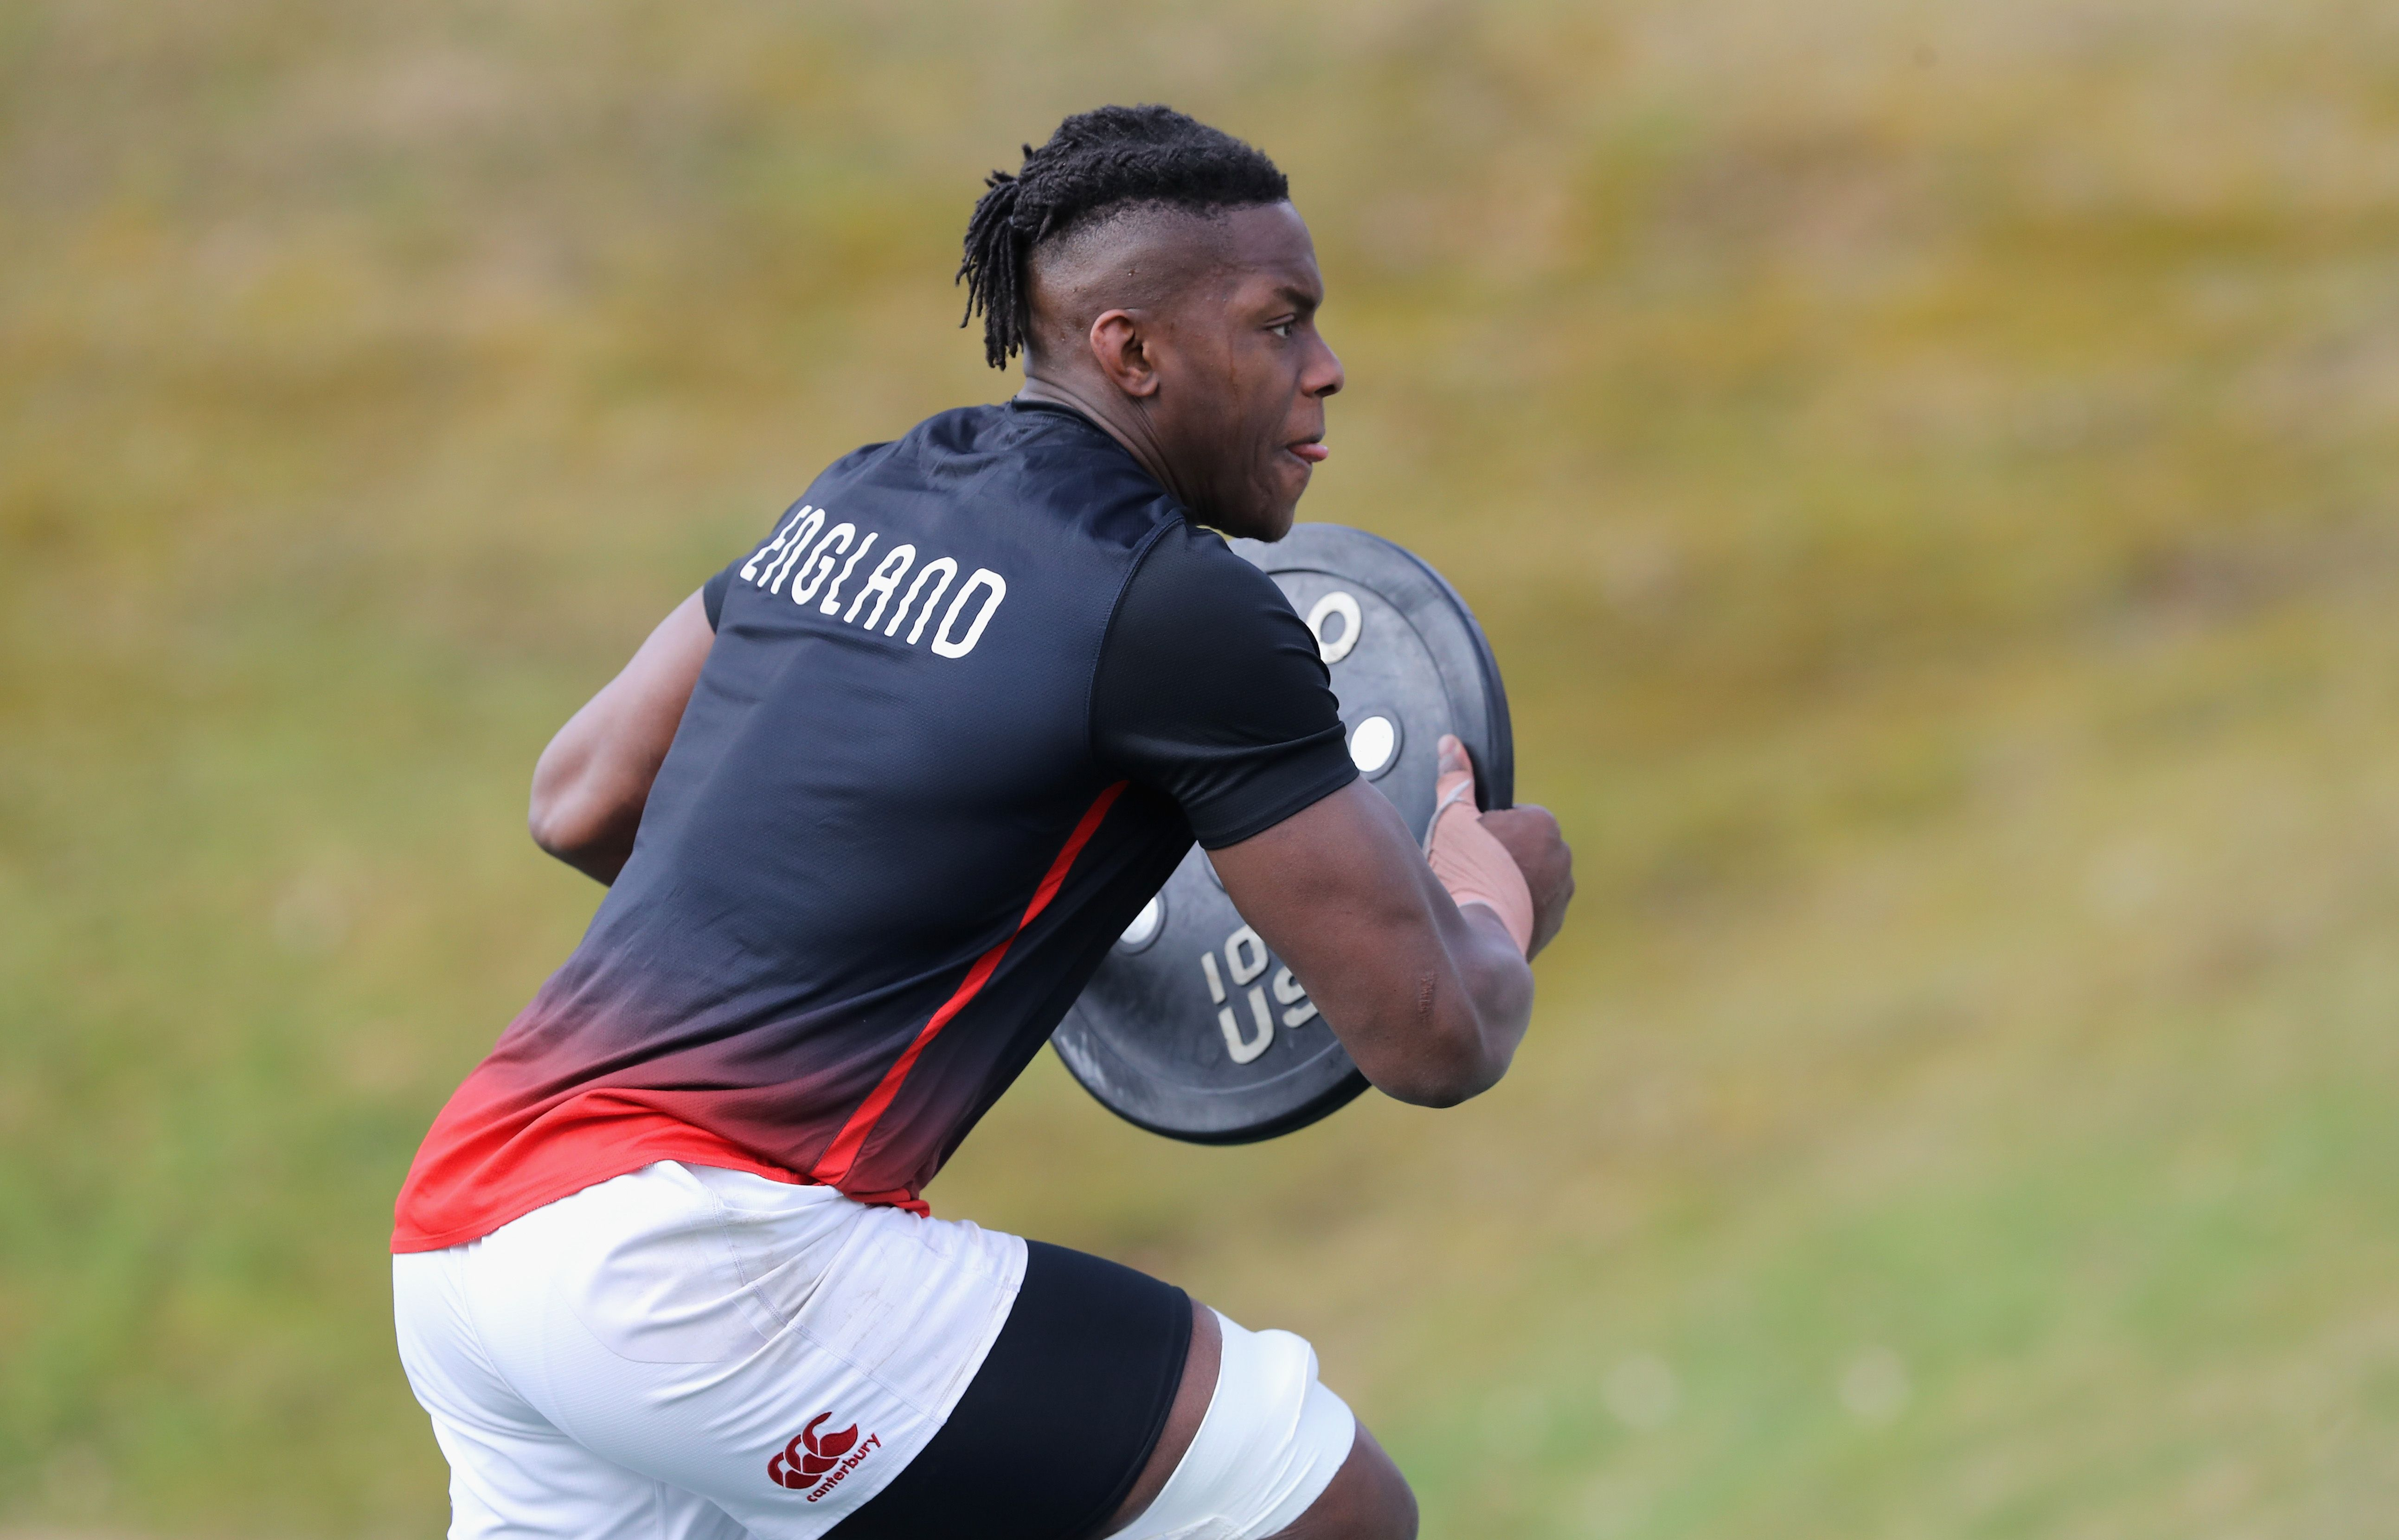 How England Rugby's Maro Itoje Built His Body